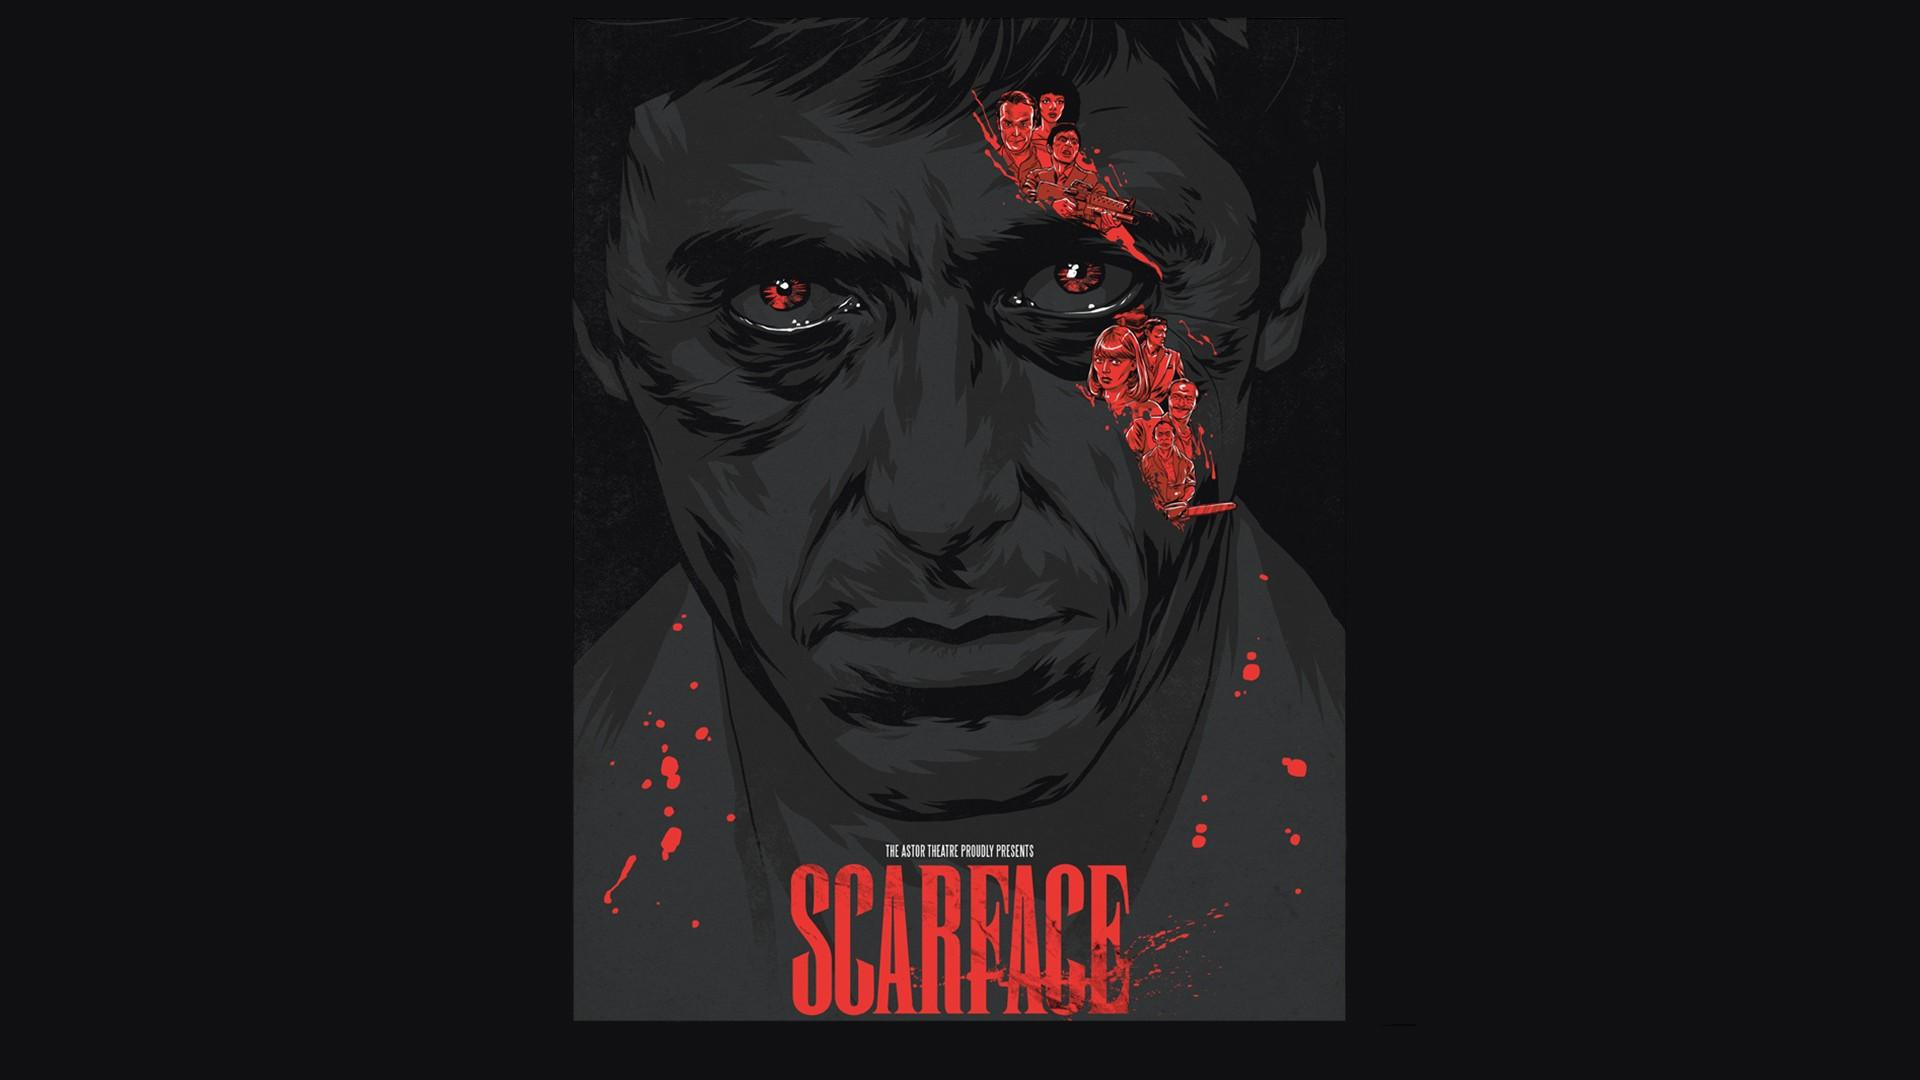 Scarface Wallpapers HD Download 1920x1080